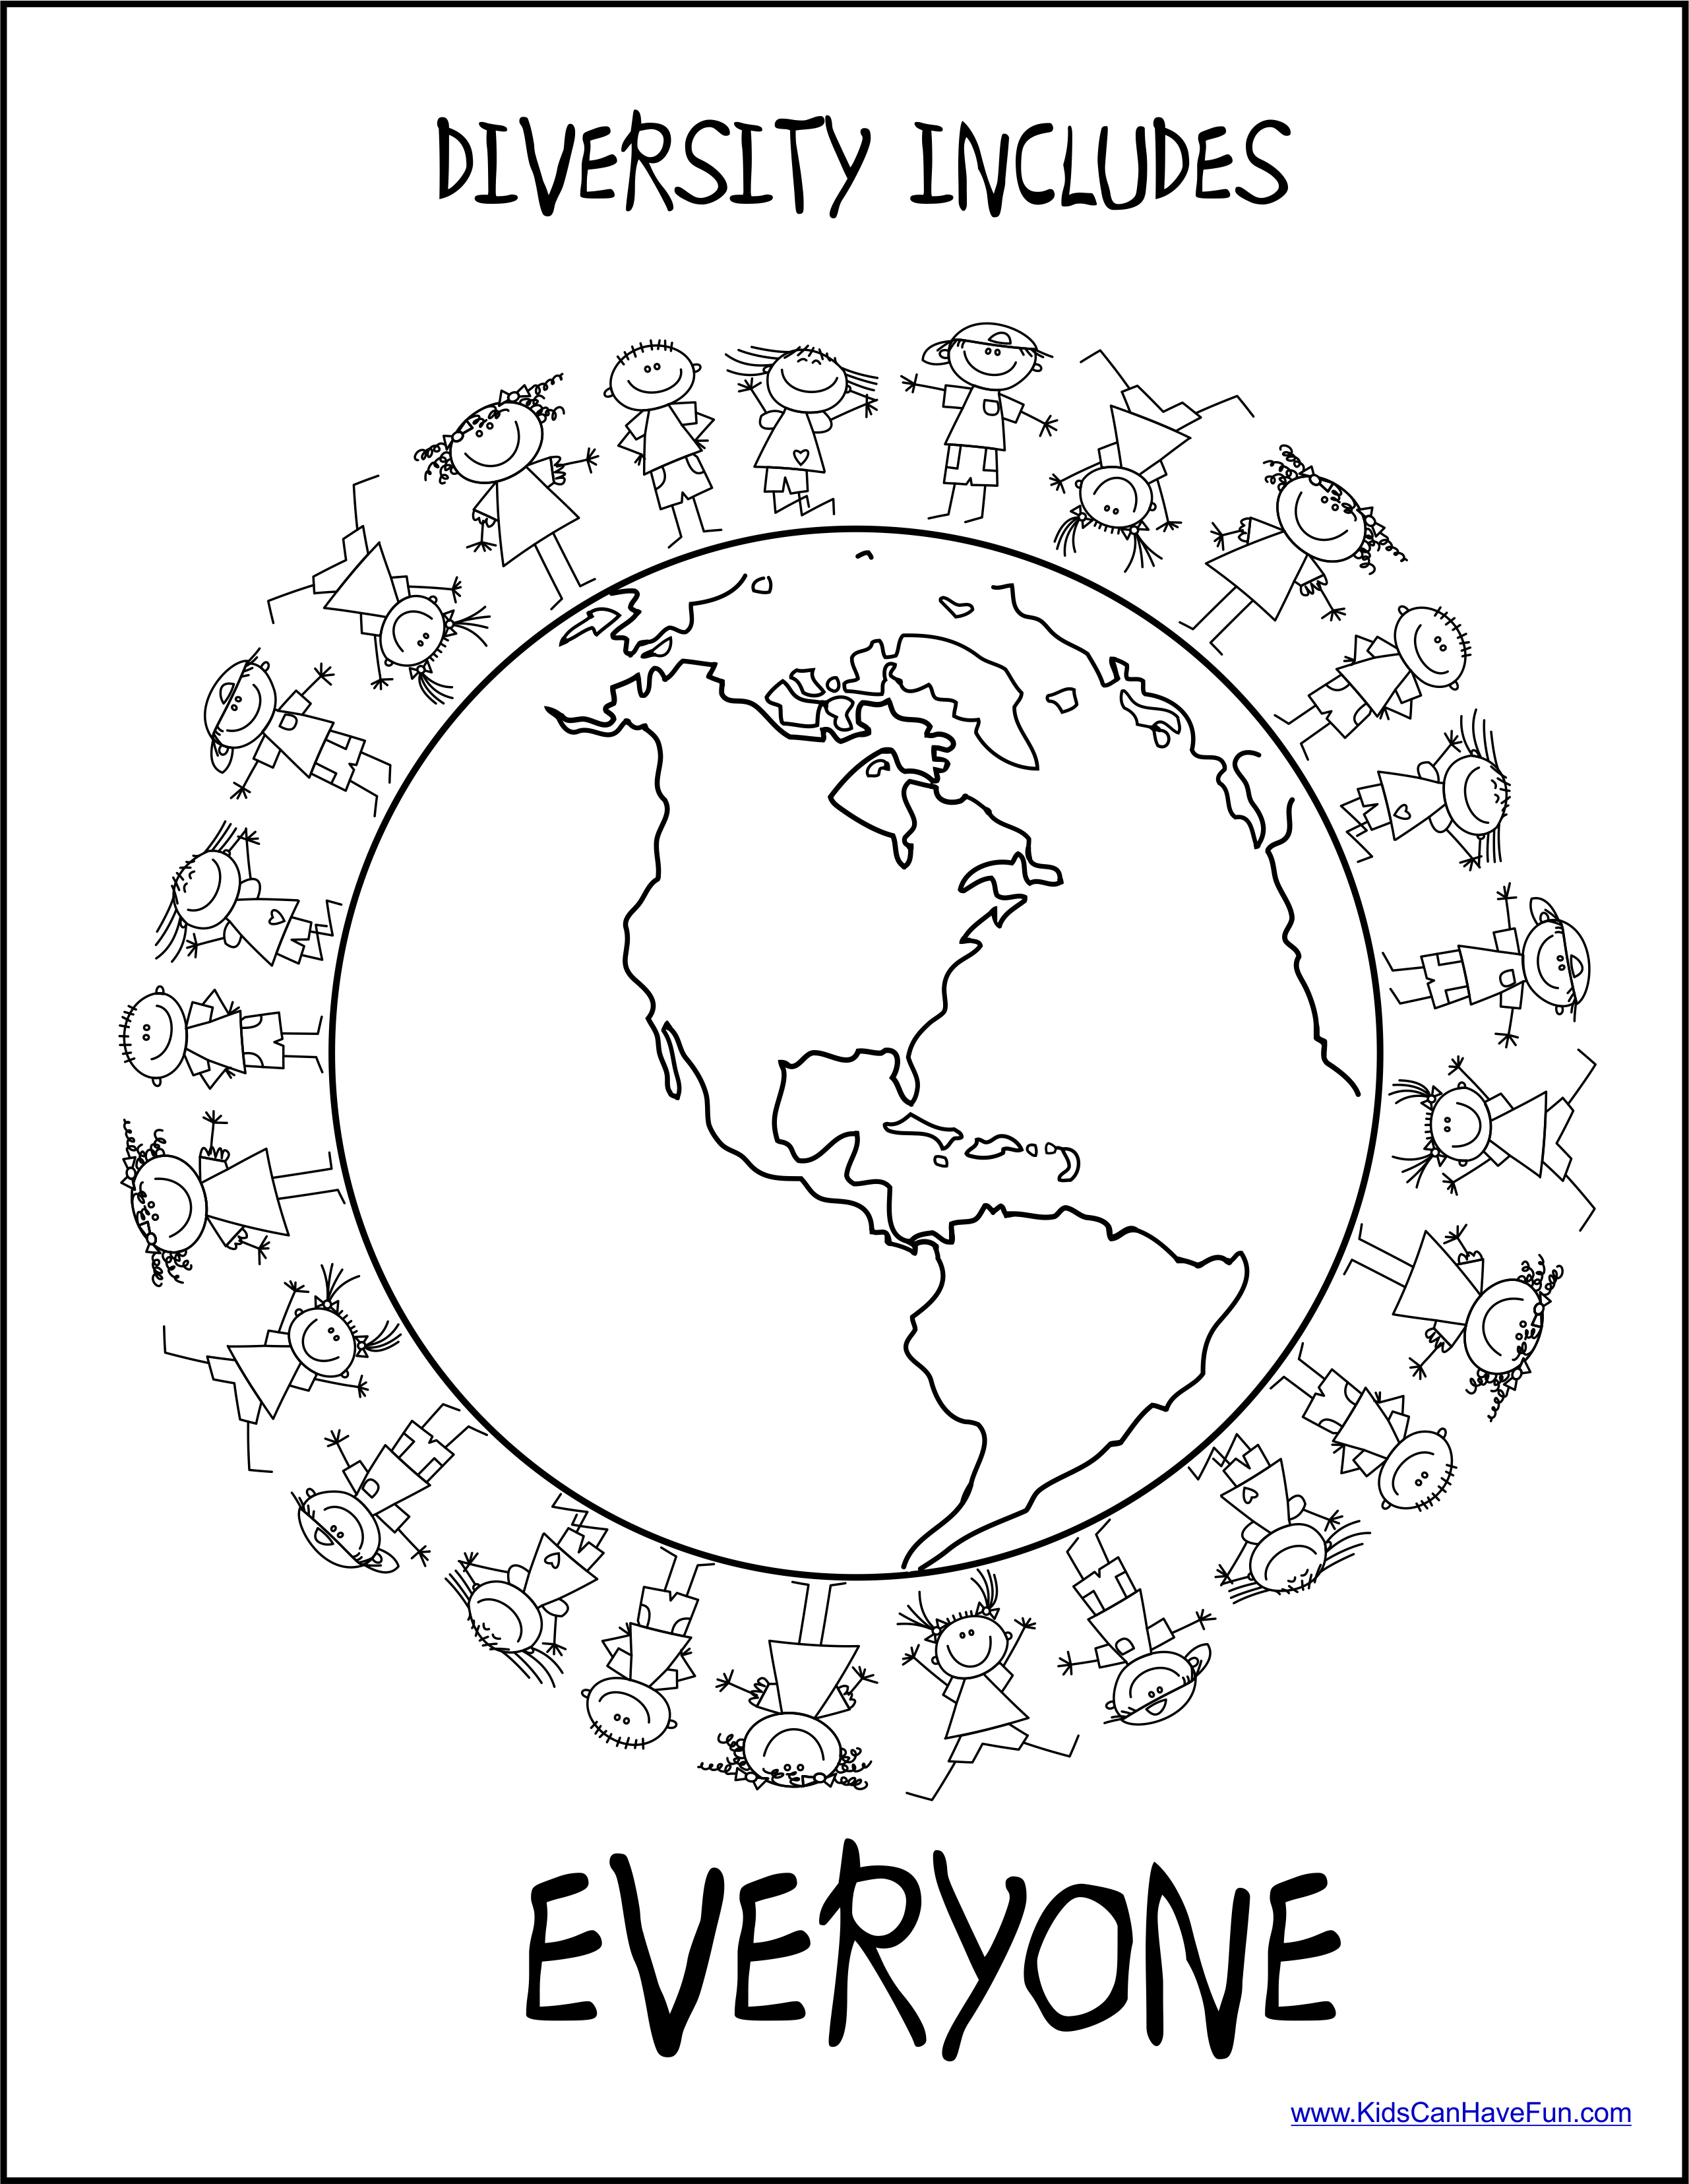 Diversity Includes Everyone Coloring Poster In